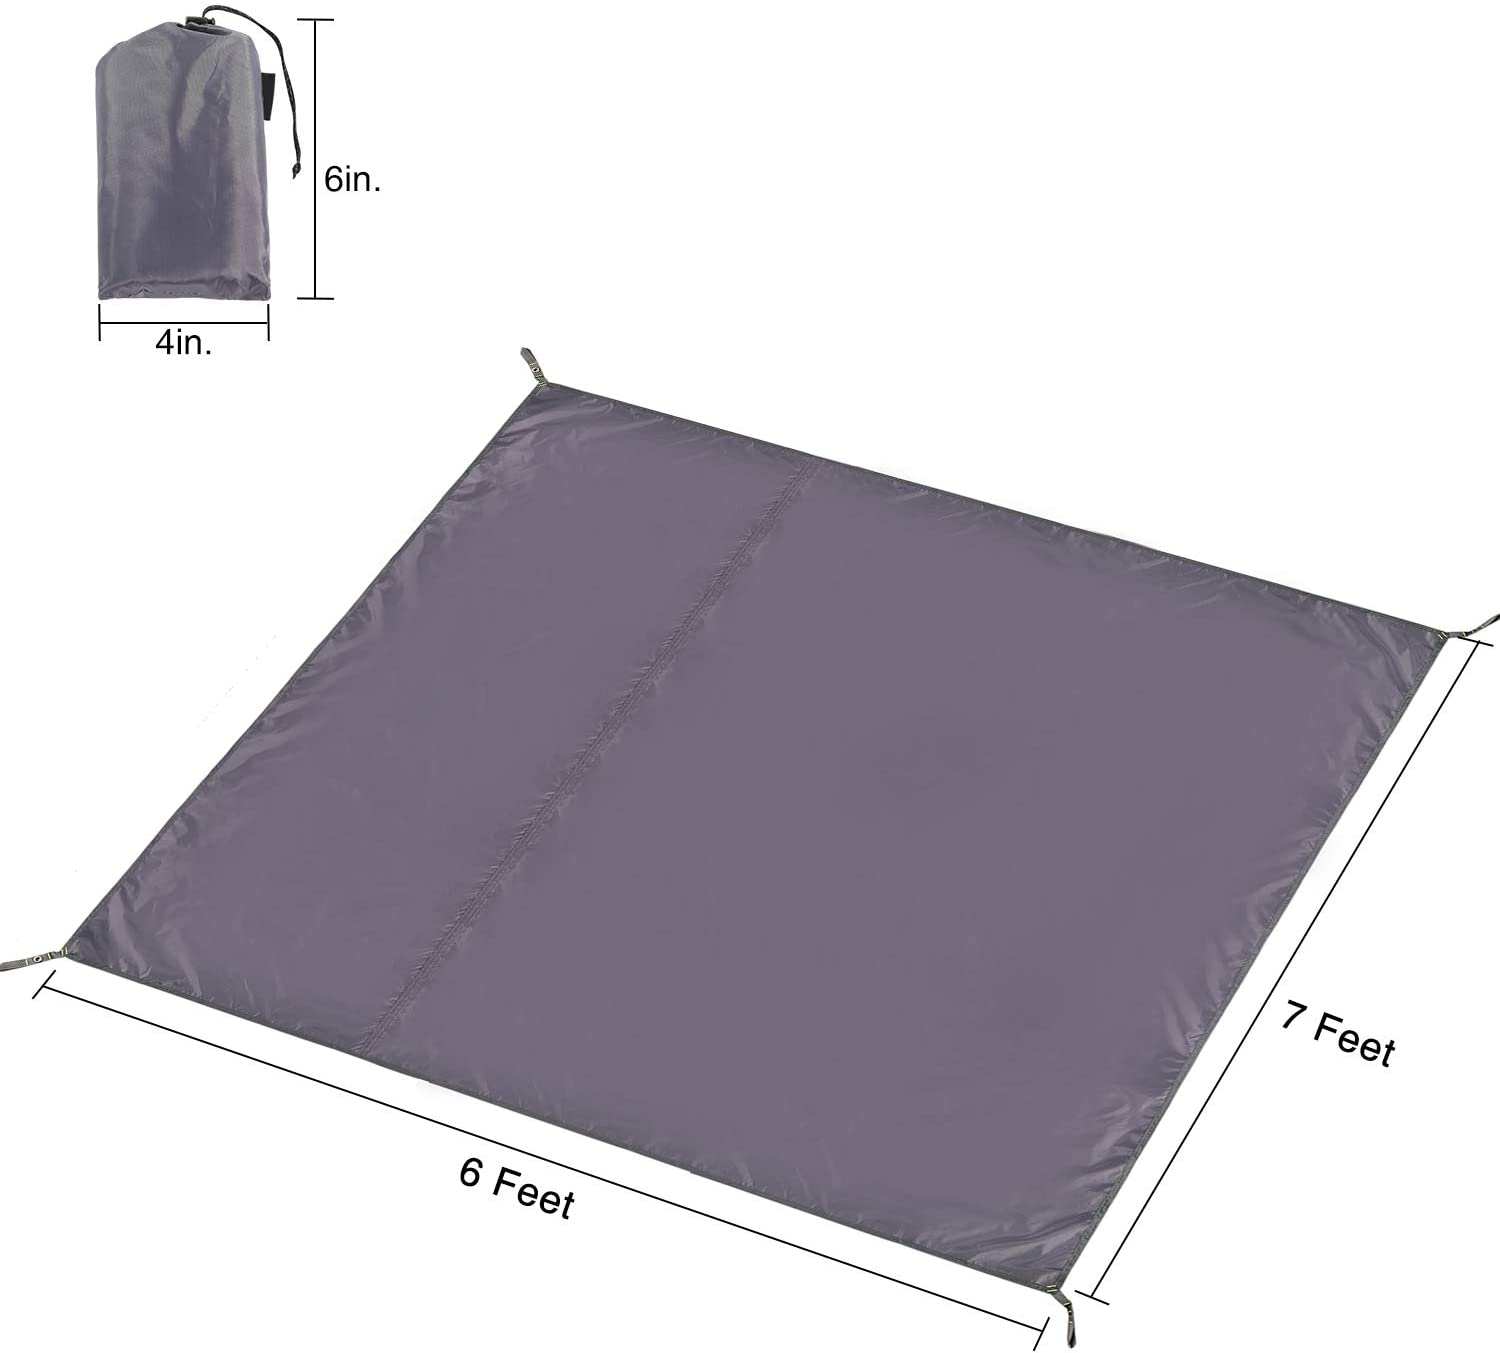 CAMPMOON Waterpfoof Camping Tarps 5x7//6x7//7x7//8x7 Feet Large Oxford 4 in 1 Tent Footprints Ultralight Compact Ground Cloth for Camping Backpacking